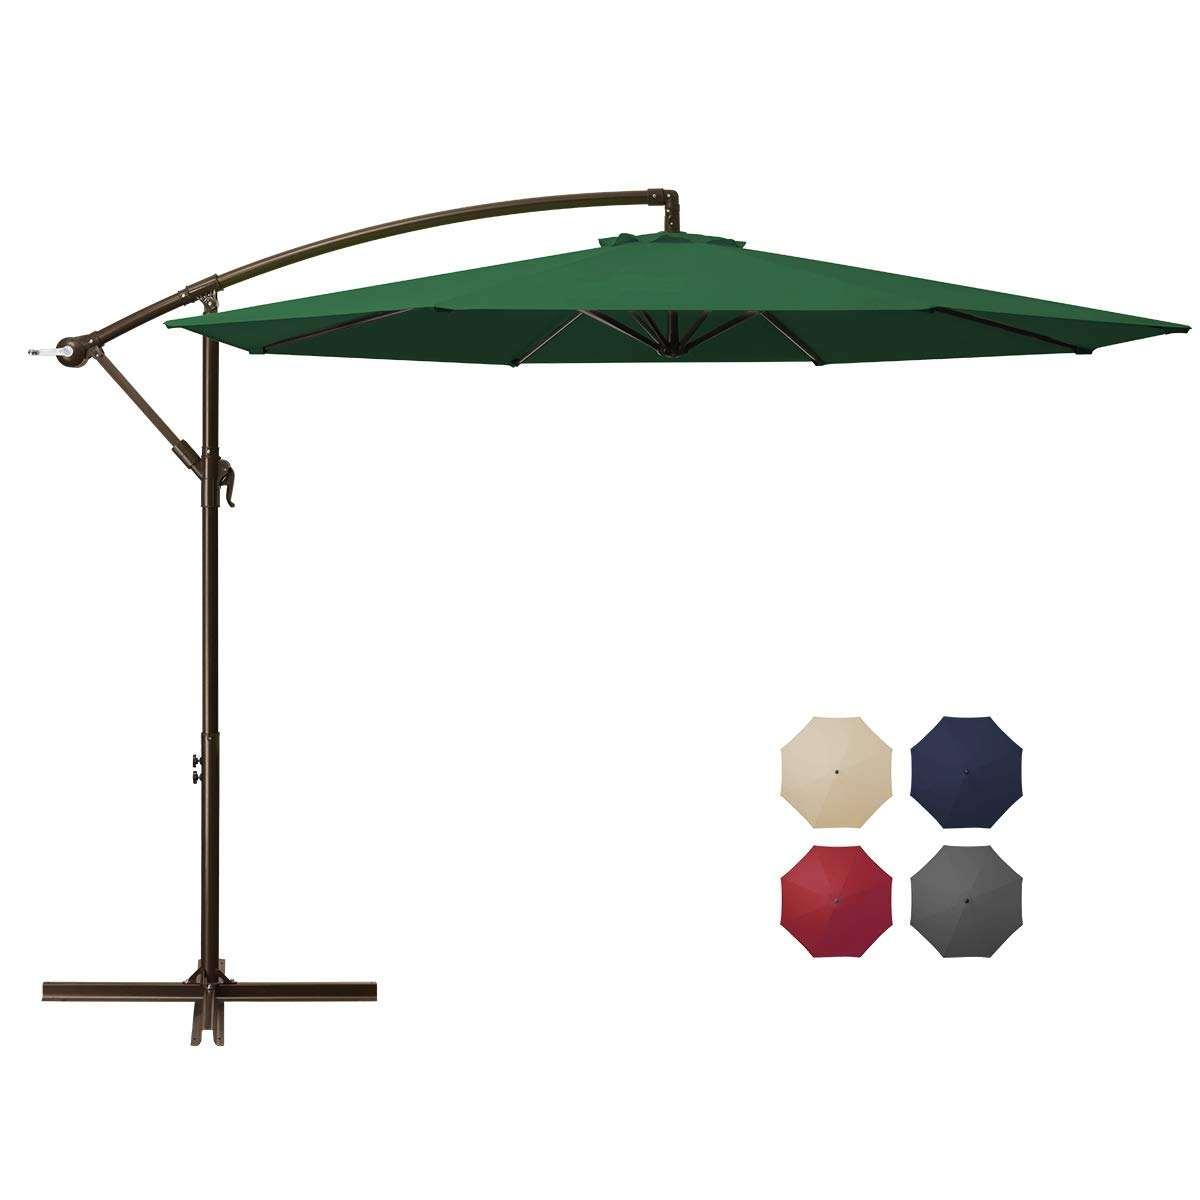 LED patio umbrella replacement canopy Luxury Foldable Sunshade outdoor yard patio cantilever parasol garden umbrella